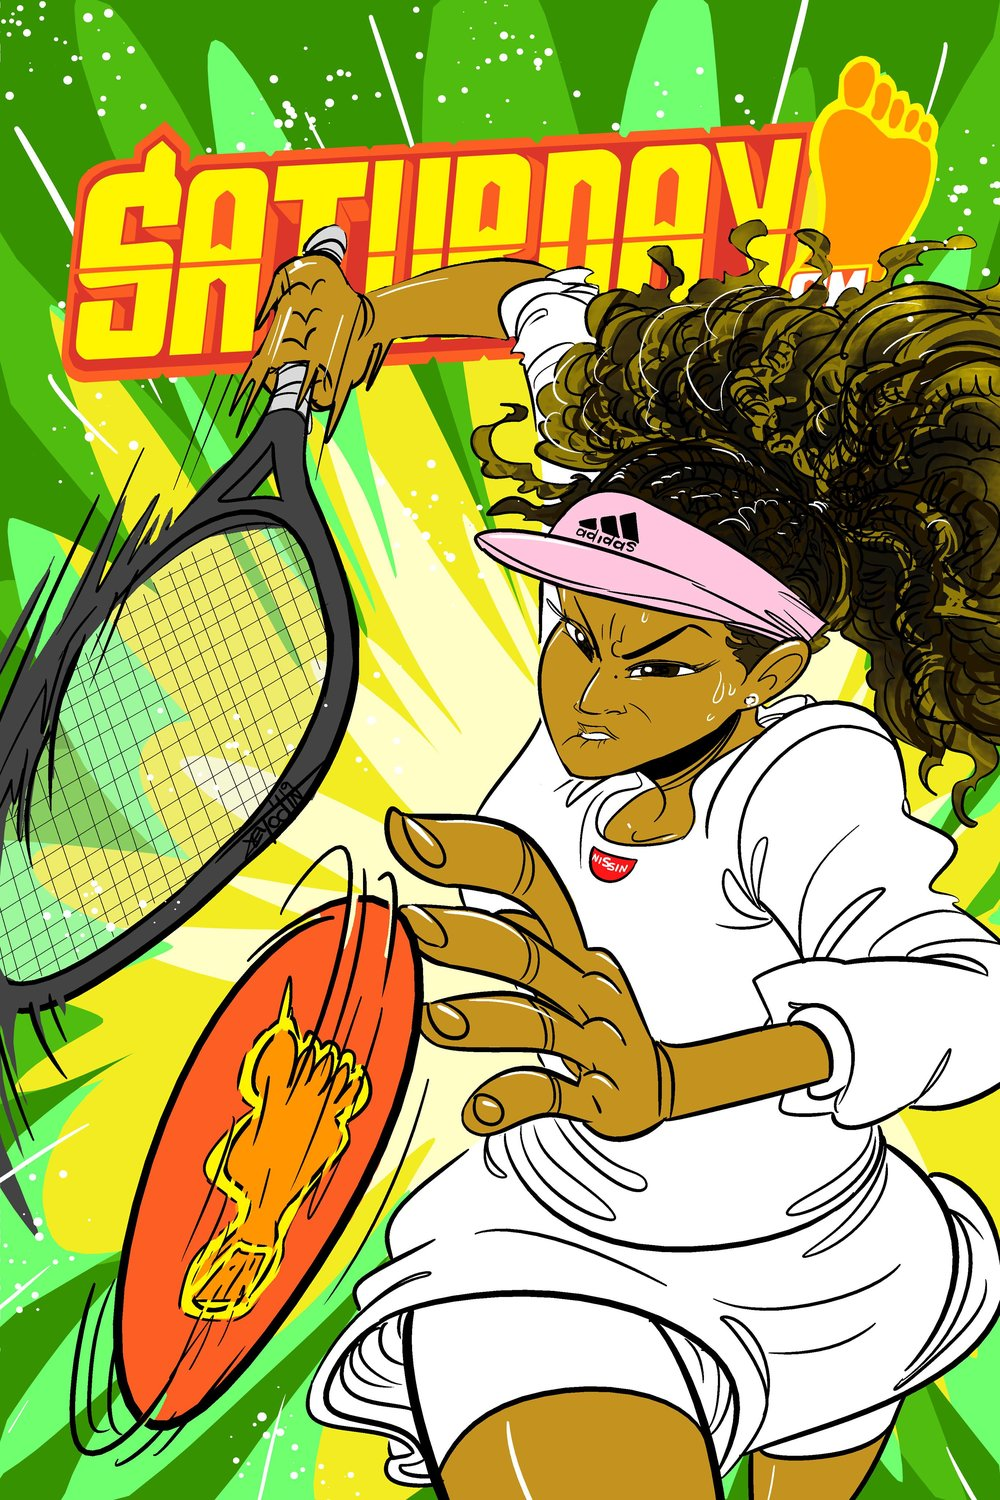 We would KILL for a Naomi Osaka manga with her AS SHE IS. This mock-up was done by the incomparable JEYODIN, creator of our HIT Series    HAMMER    in Saturday AM magazine.